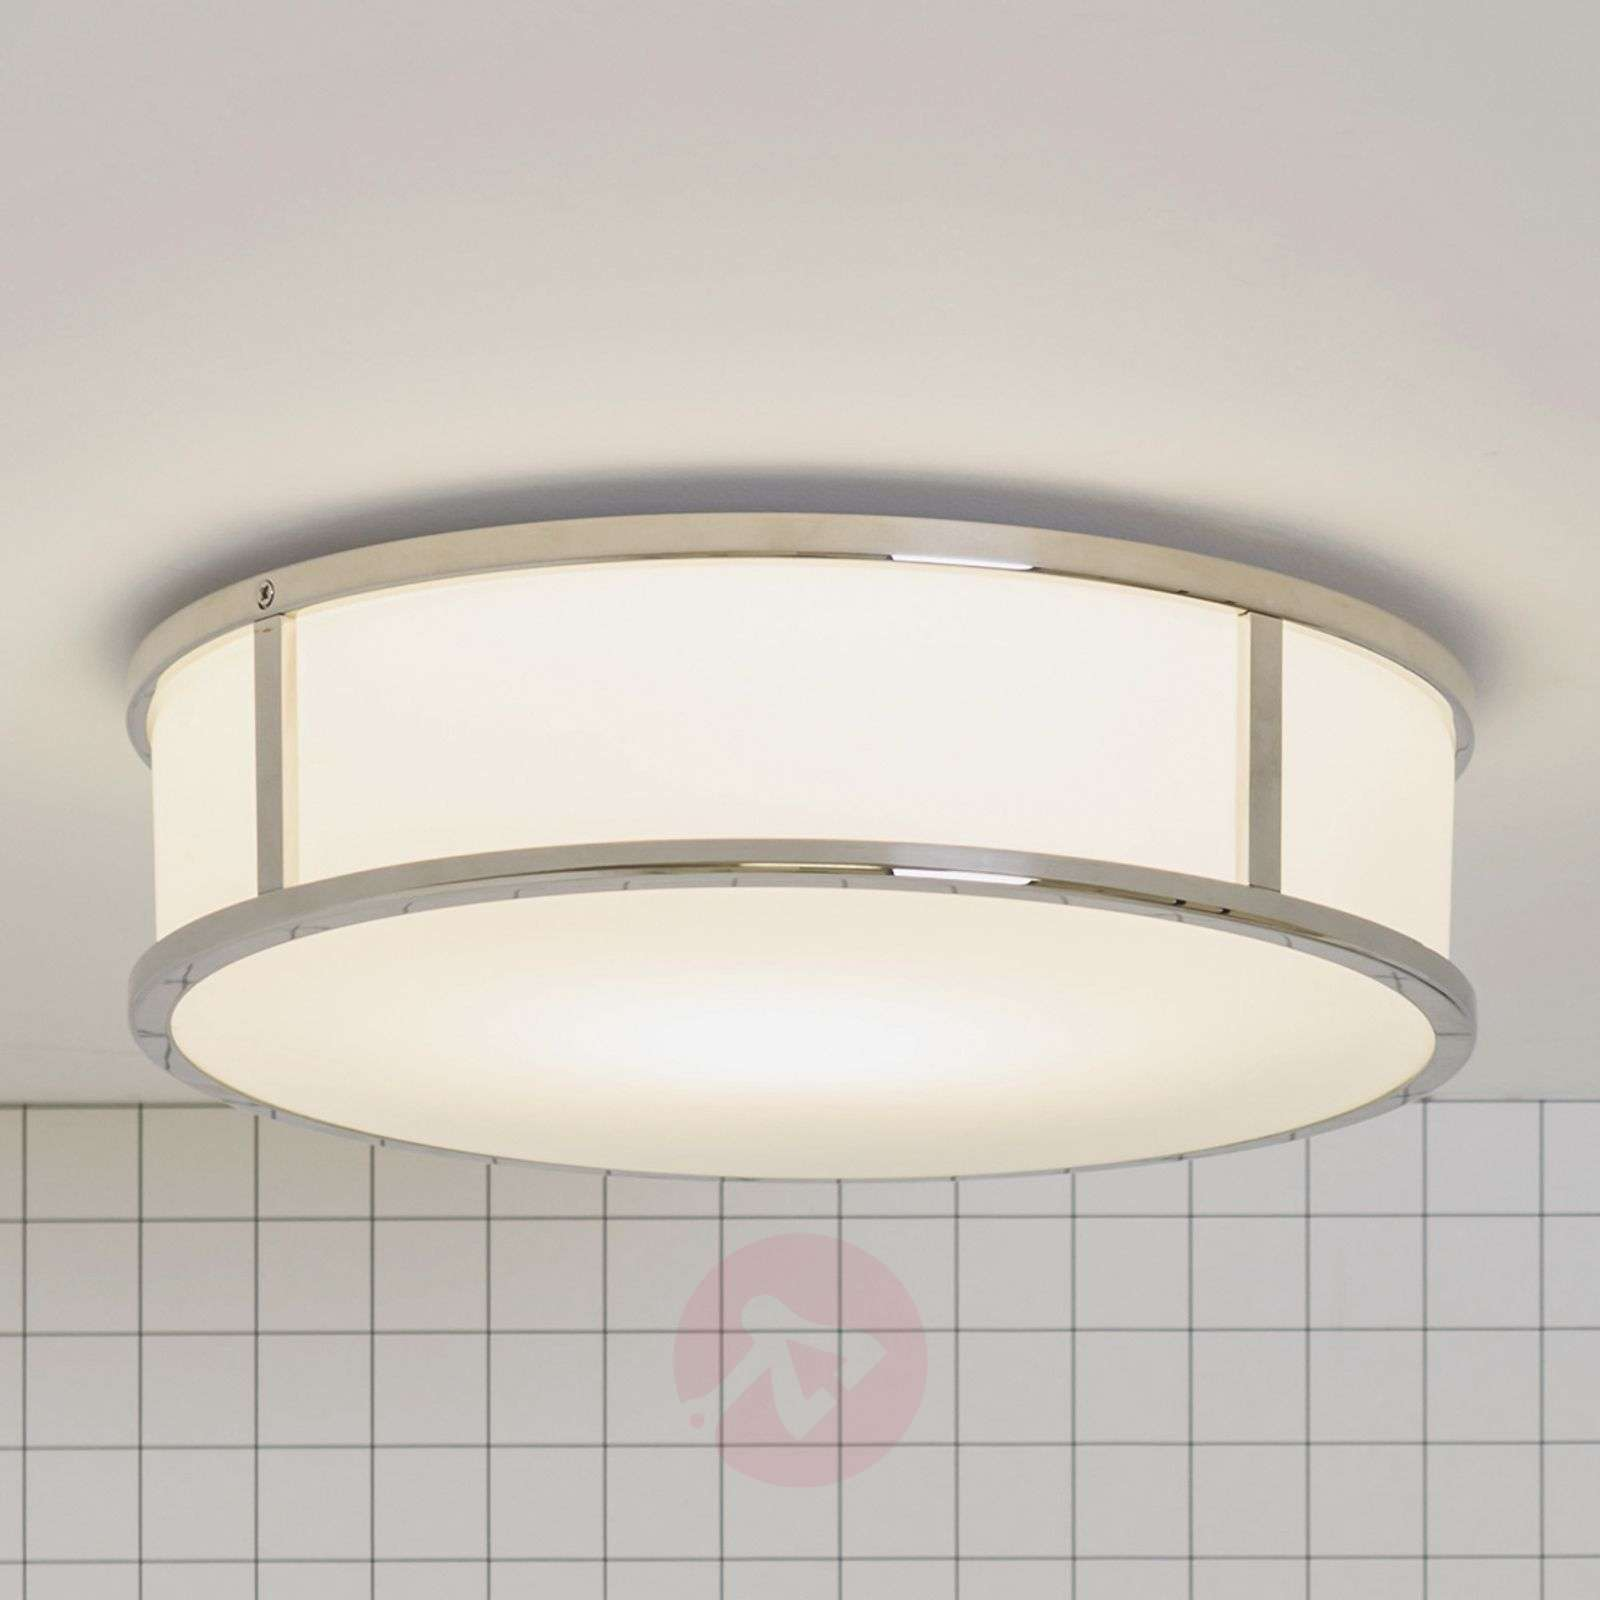 Mashiko Round Bathroom Ceiling Light Lightsie - Bathroom celing